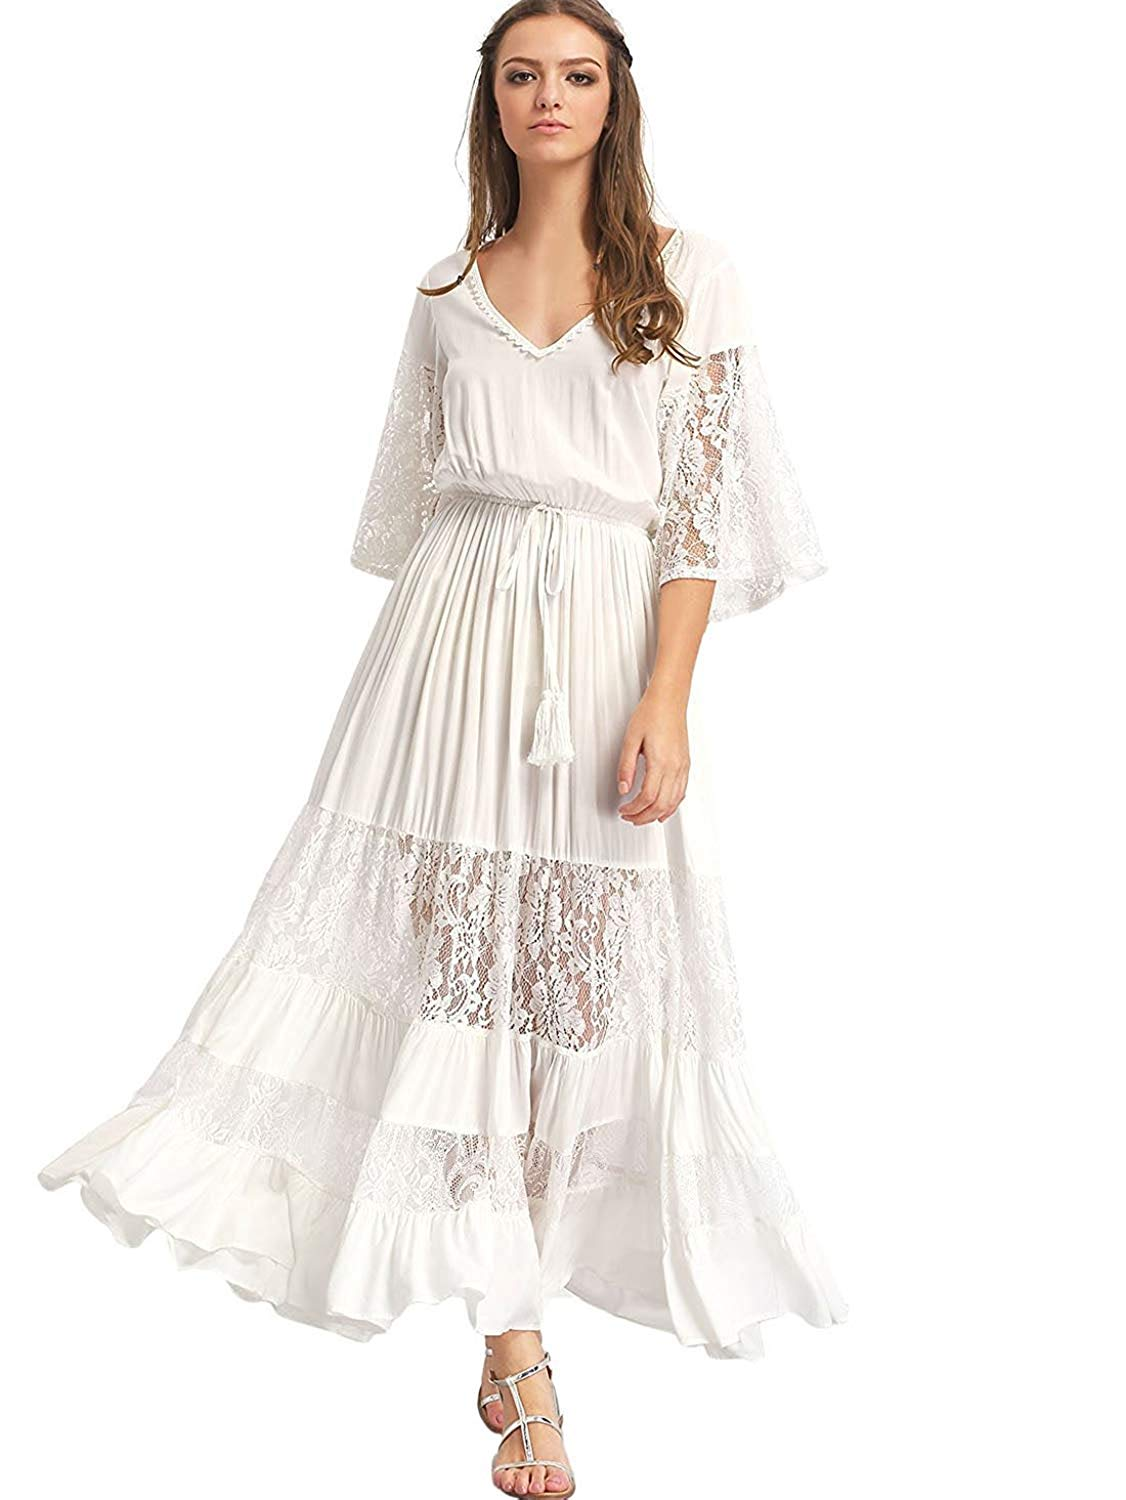 Milumia Women's Bohemian Drawstring Waist Lace Splicing White Long Maxi Dress